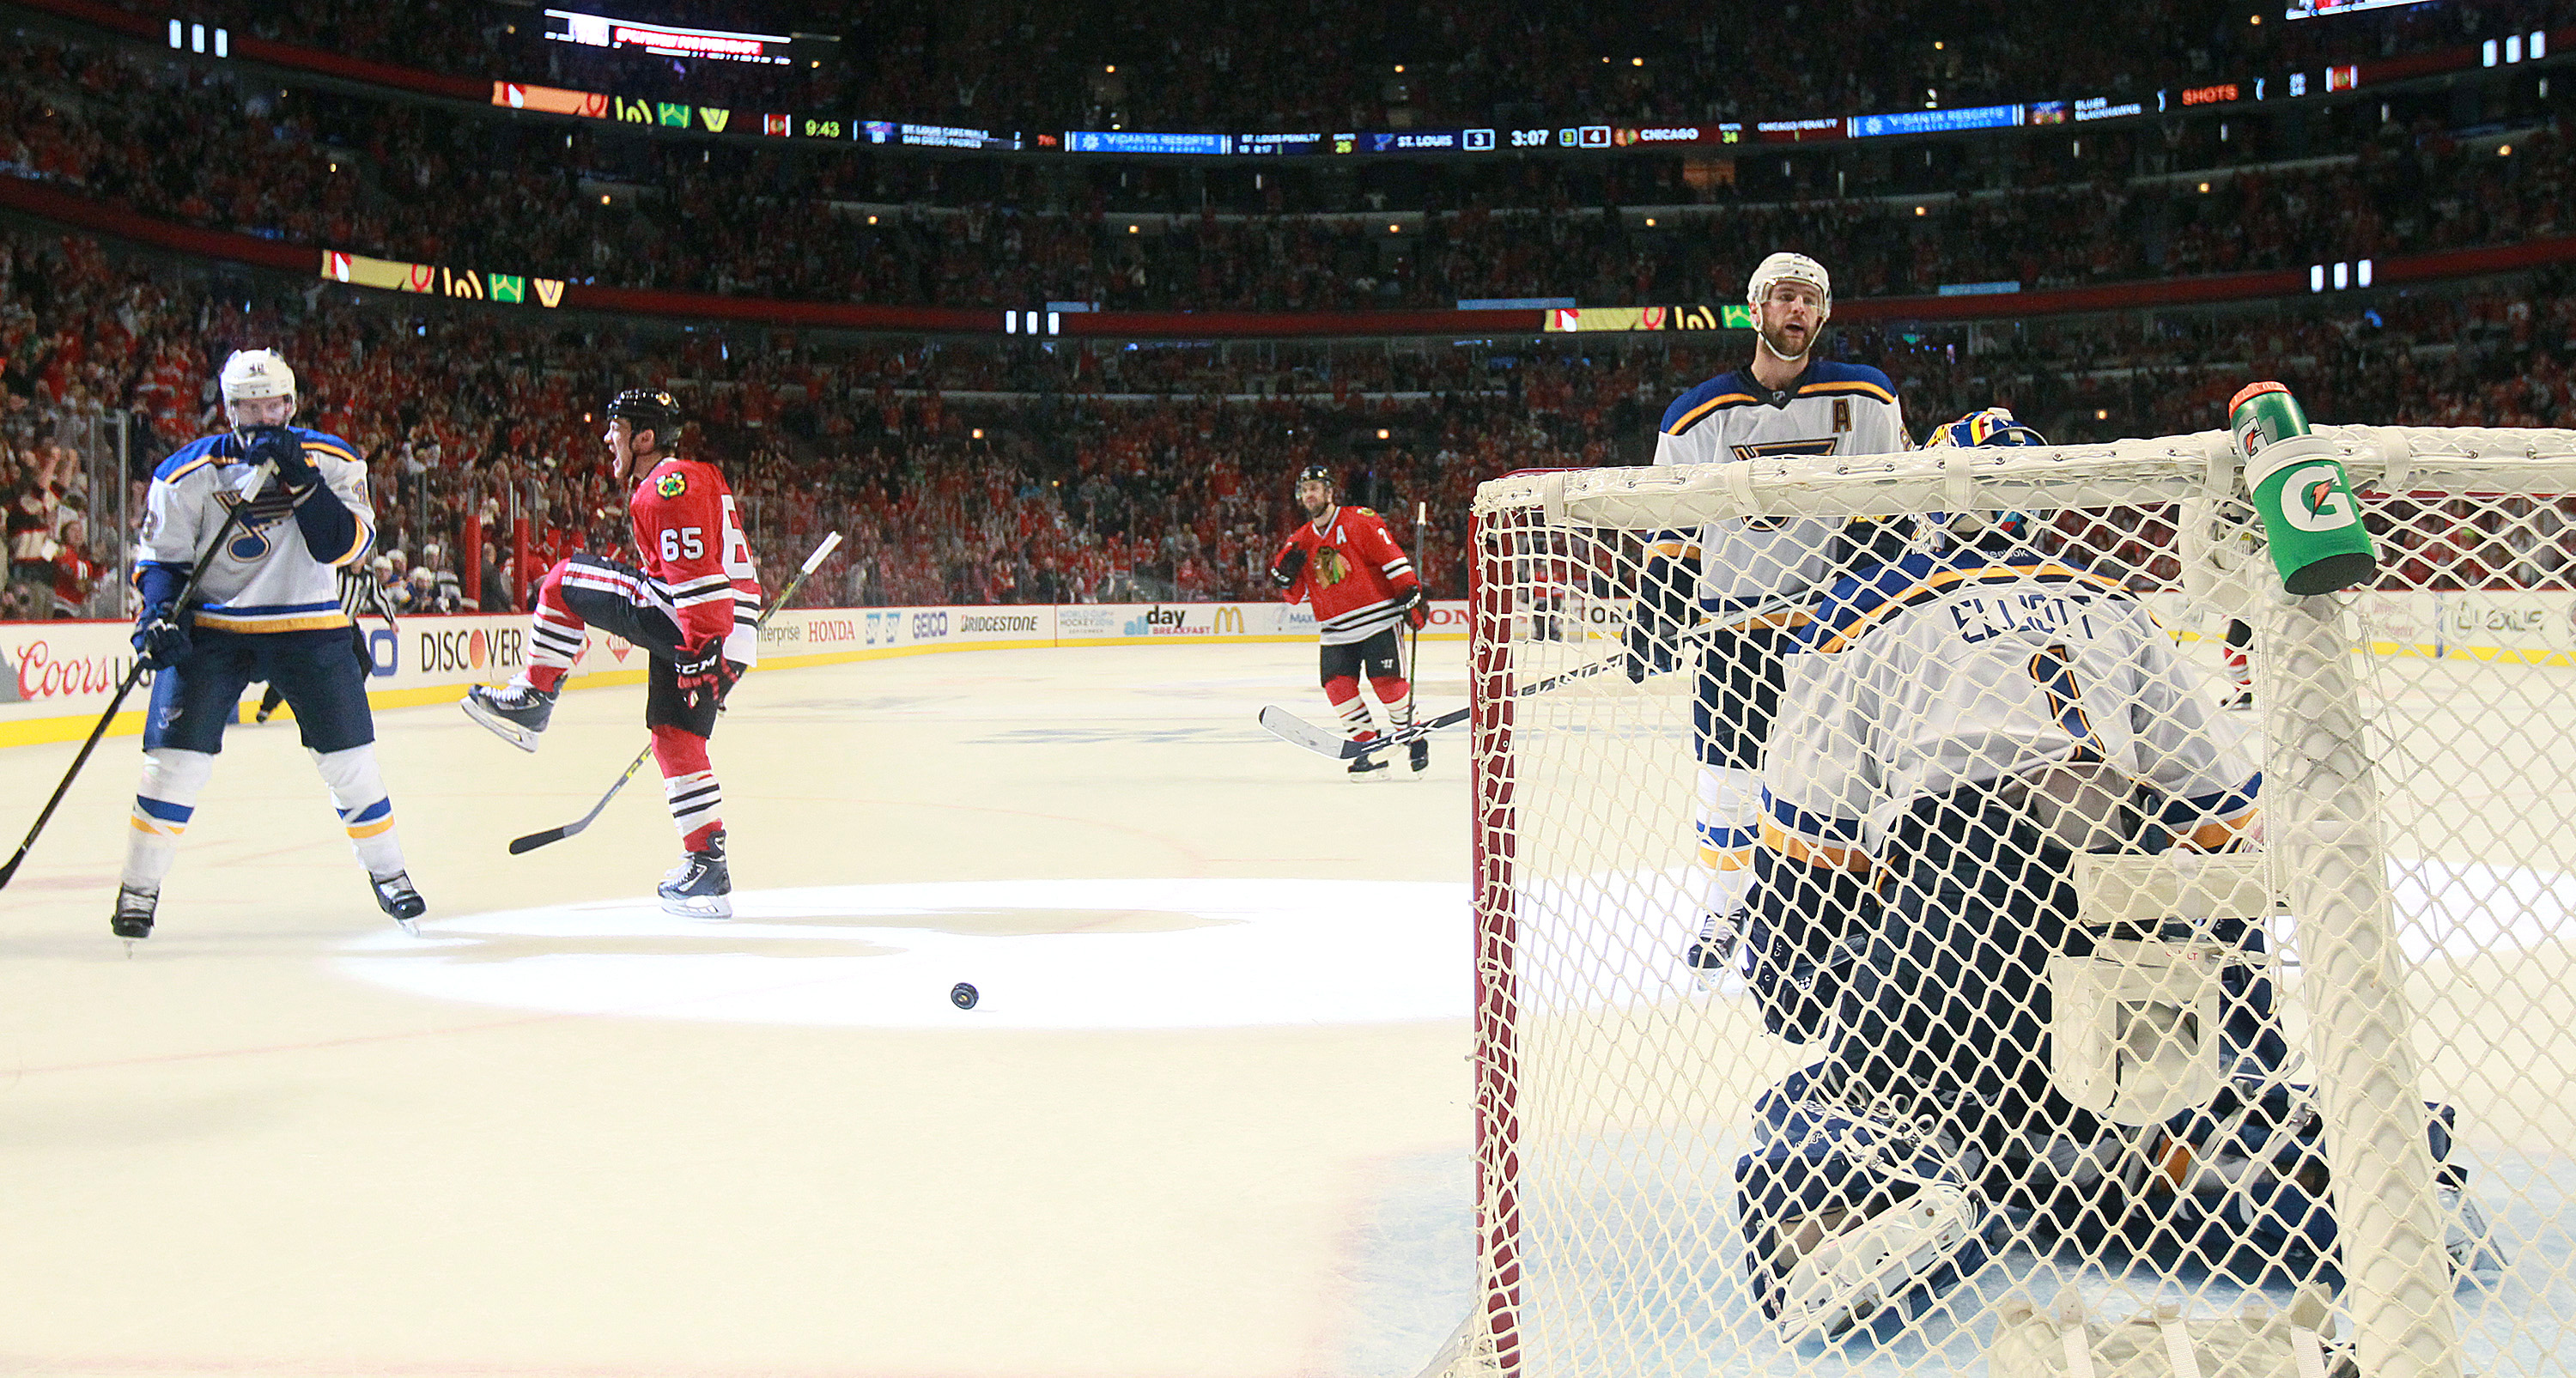 Chicago Blackhawks right wing Andrew Shaw (65) reacts after scoring in the third period against St. Louis Blues goaltender Brian Elliott (1) during Game 6 of an NHL hockey first-round Stanley Cup playoff series against the St. Louis Blues, Saturday, April